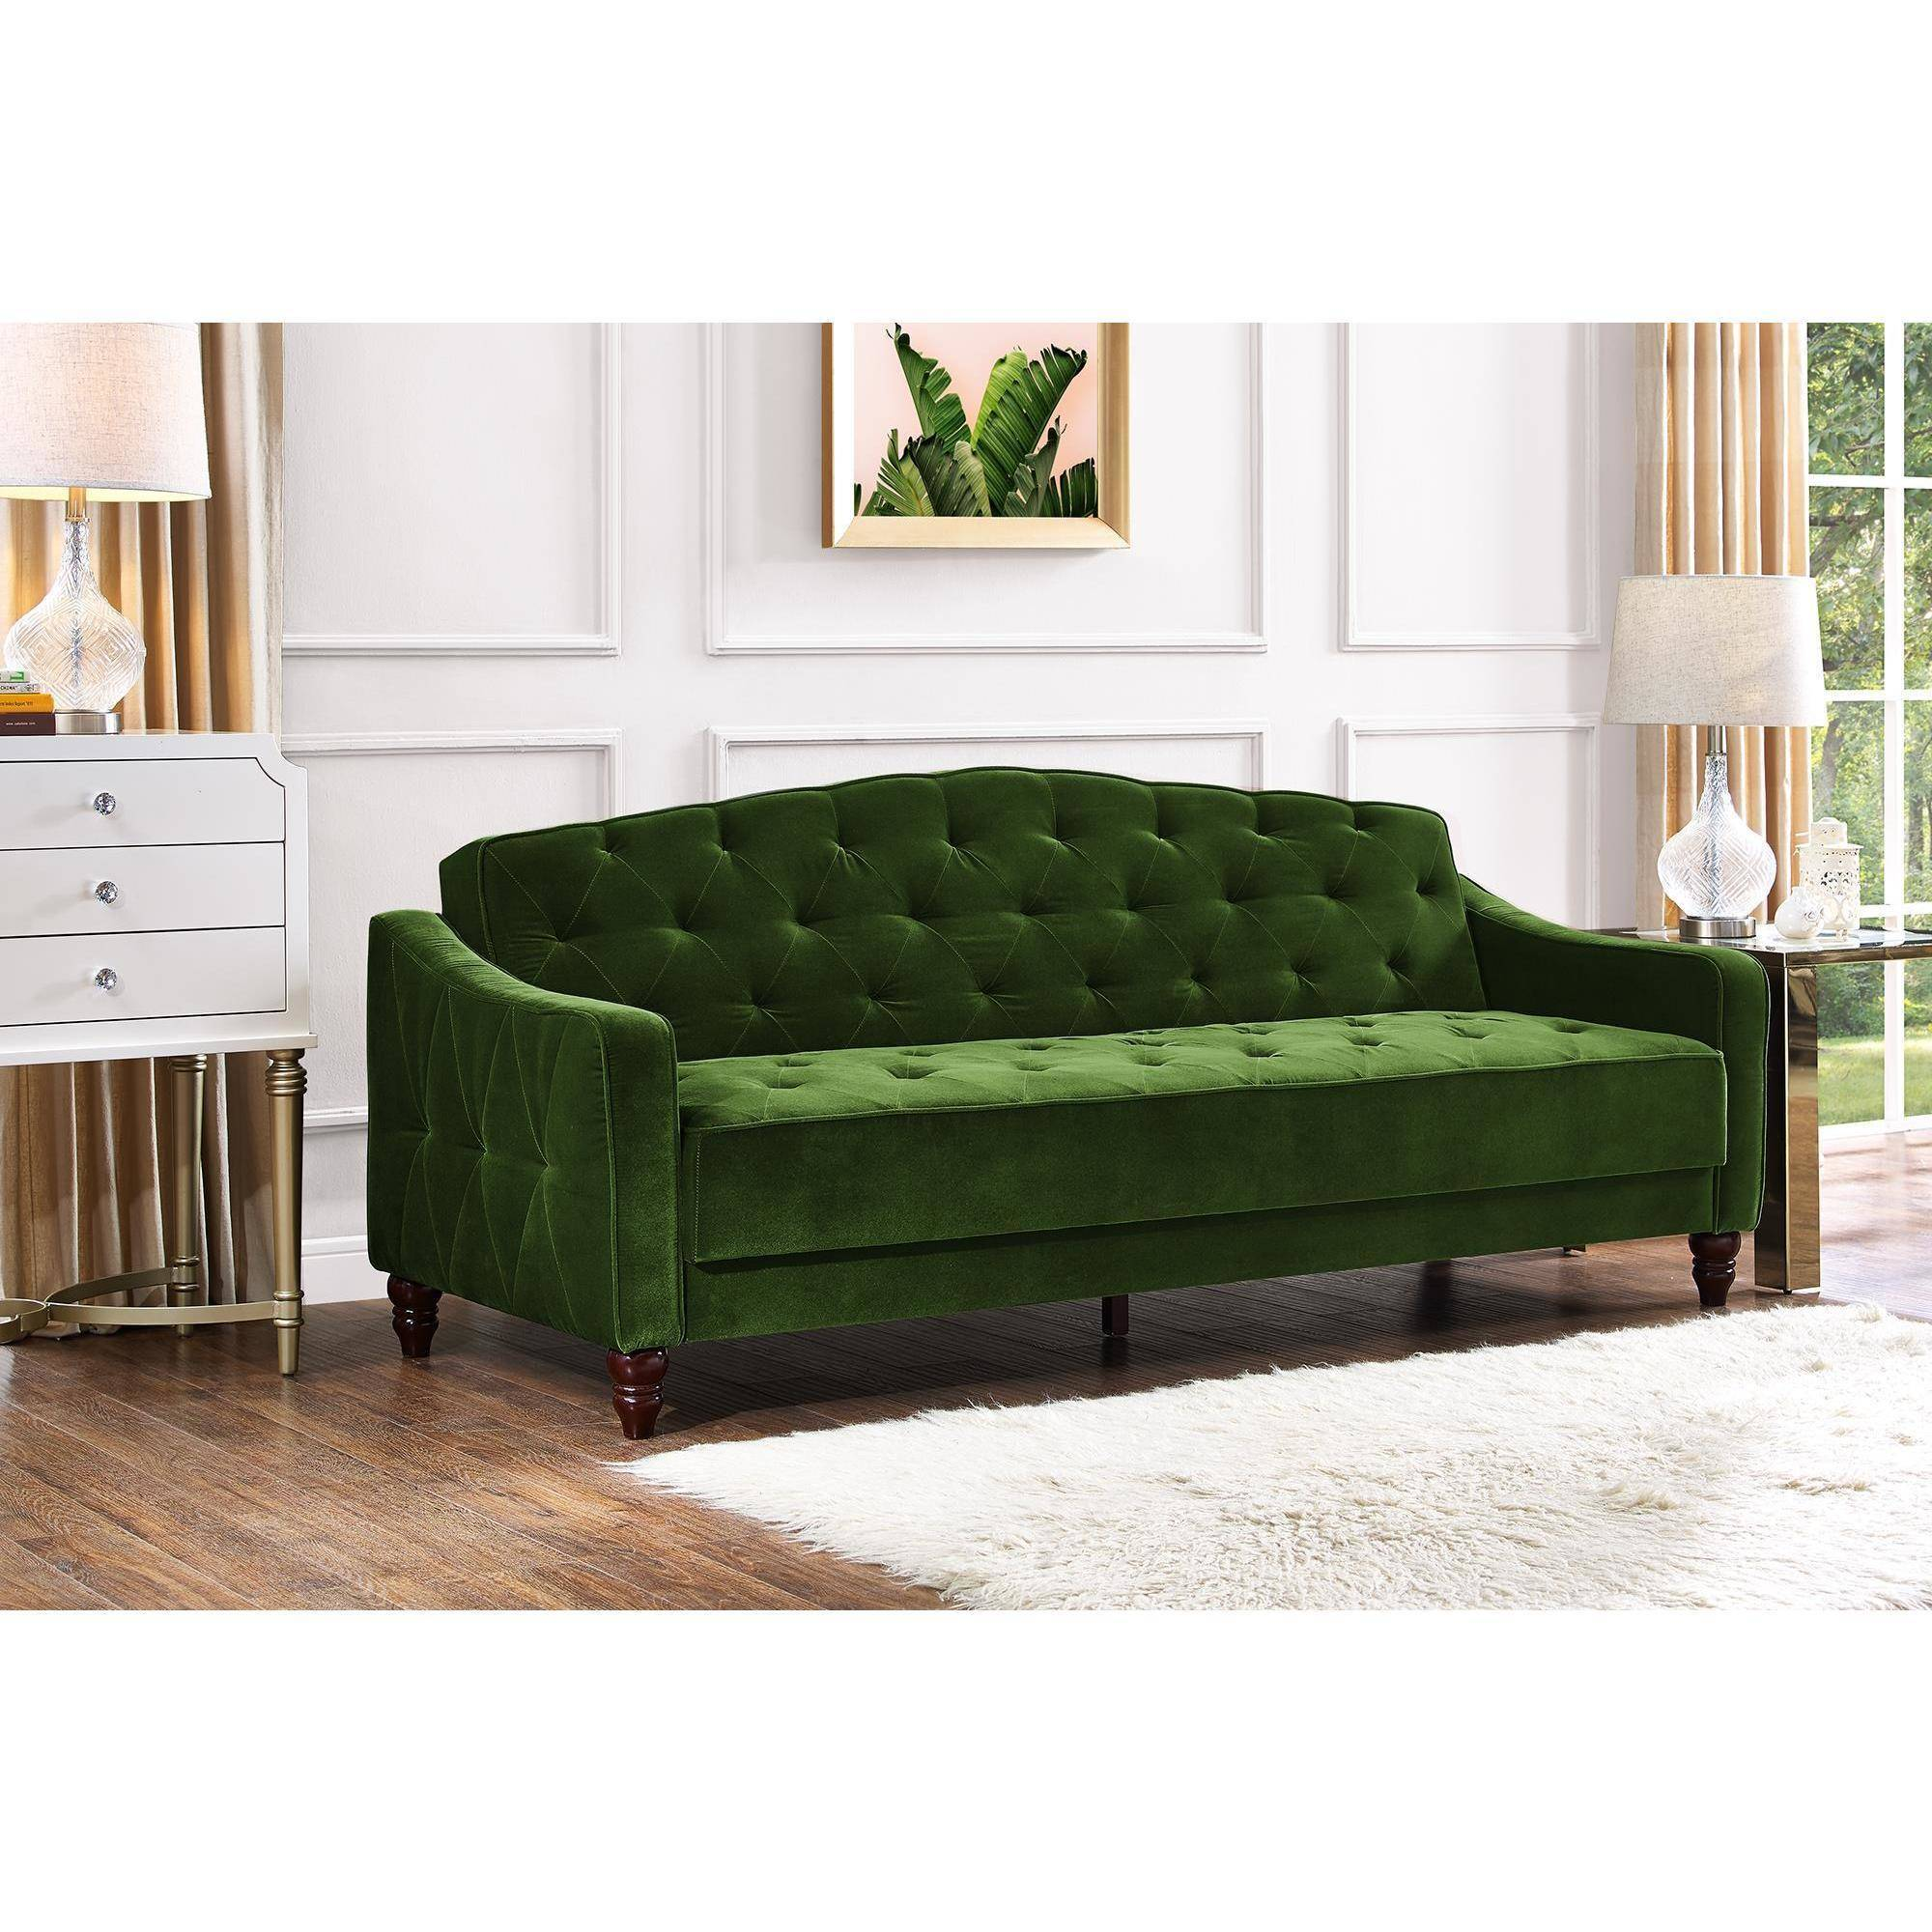 Vintage Couch Novogratz Vintage Tufted Sofa Sleeper Ii Multiple Colors